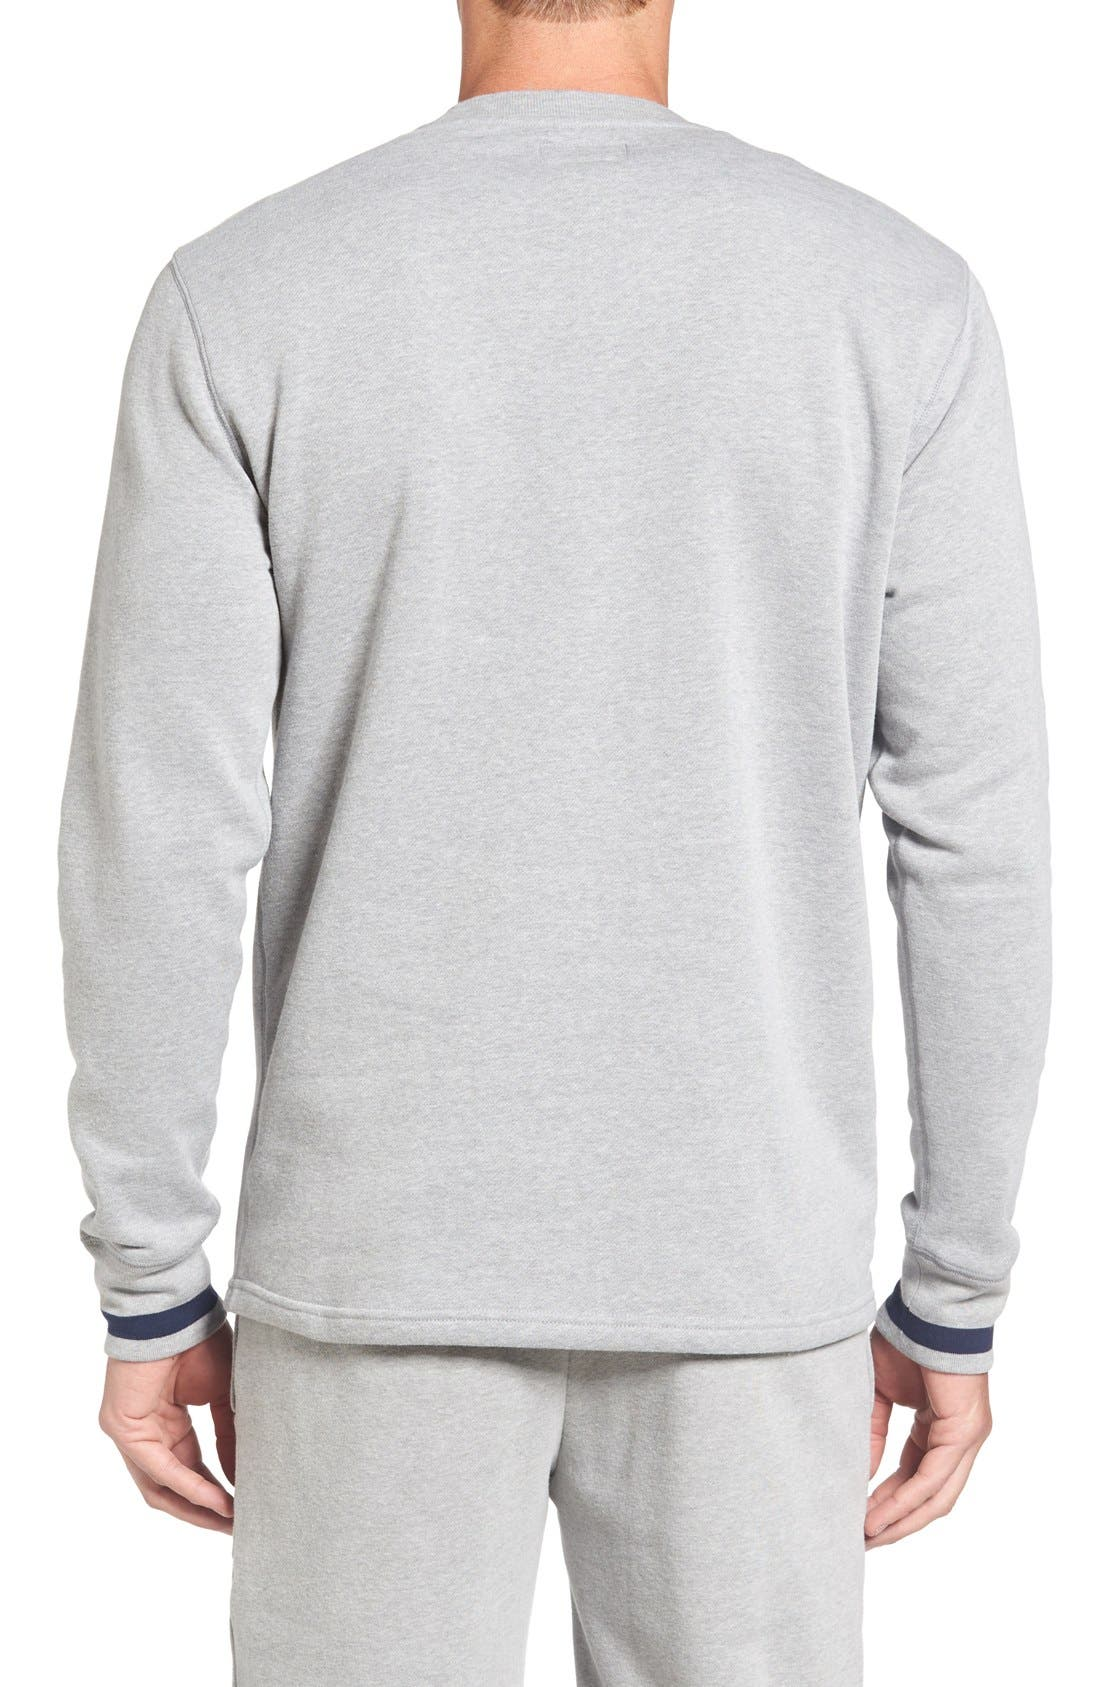 Brushed Jersey Cotton Blend Crewneck Sweatshirt,                             Alternate thumbnail 2, color,                             Andover Heather Grey